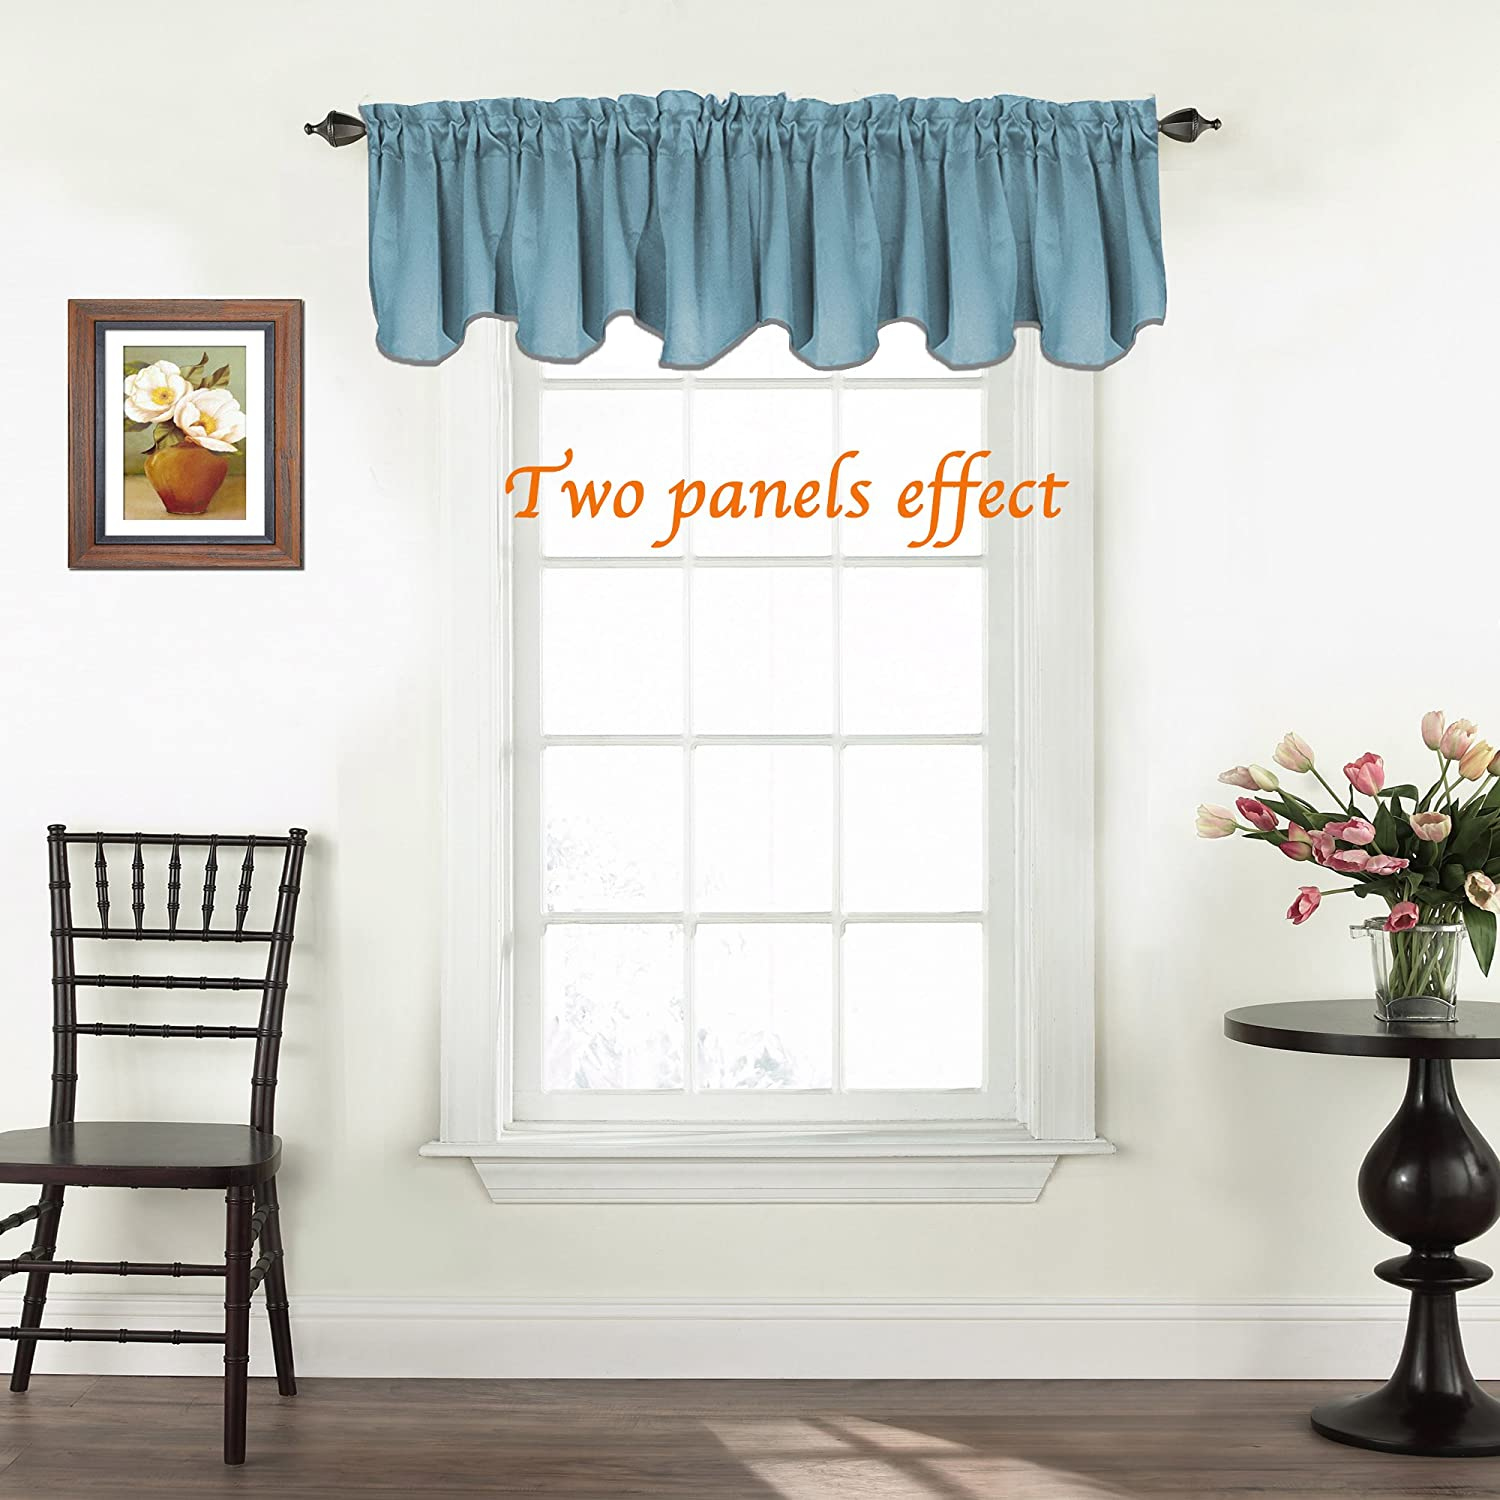 1 Panel Dove Gray Scalloped Window Treatment 52-inch by 18-inch Short Curtains Turquoize Solid Blackout Valance